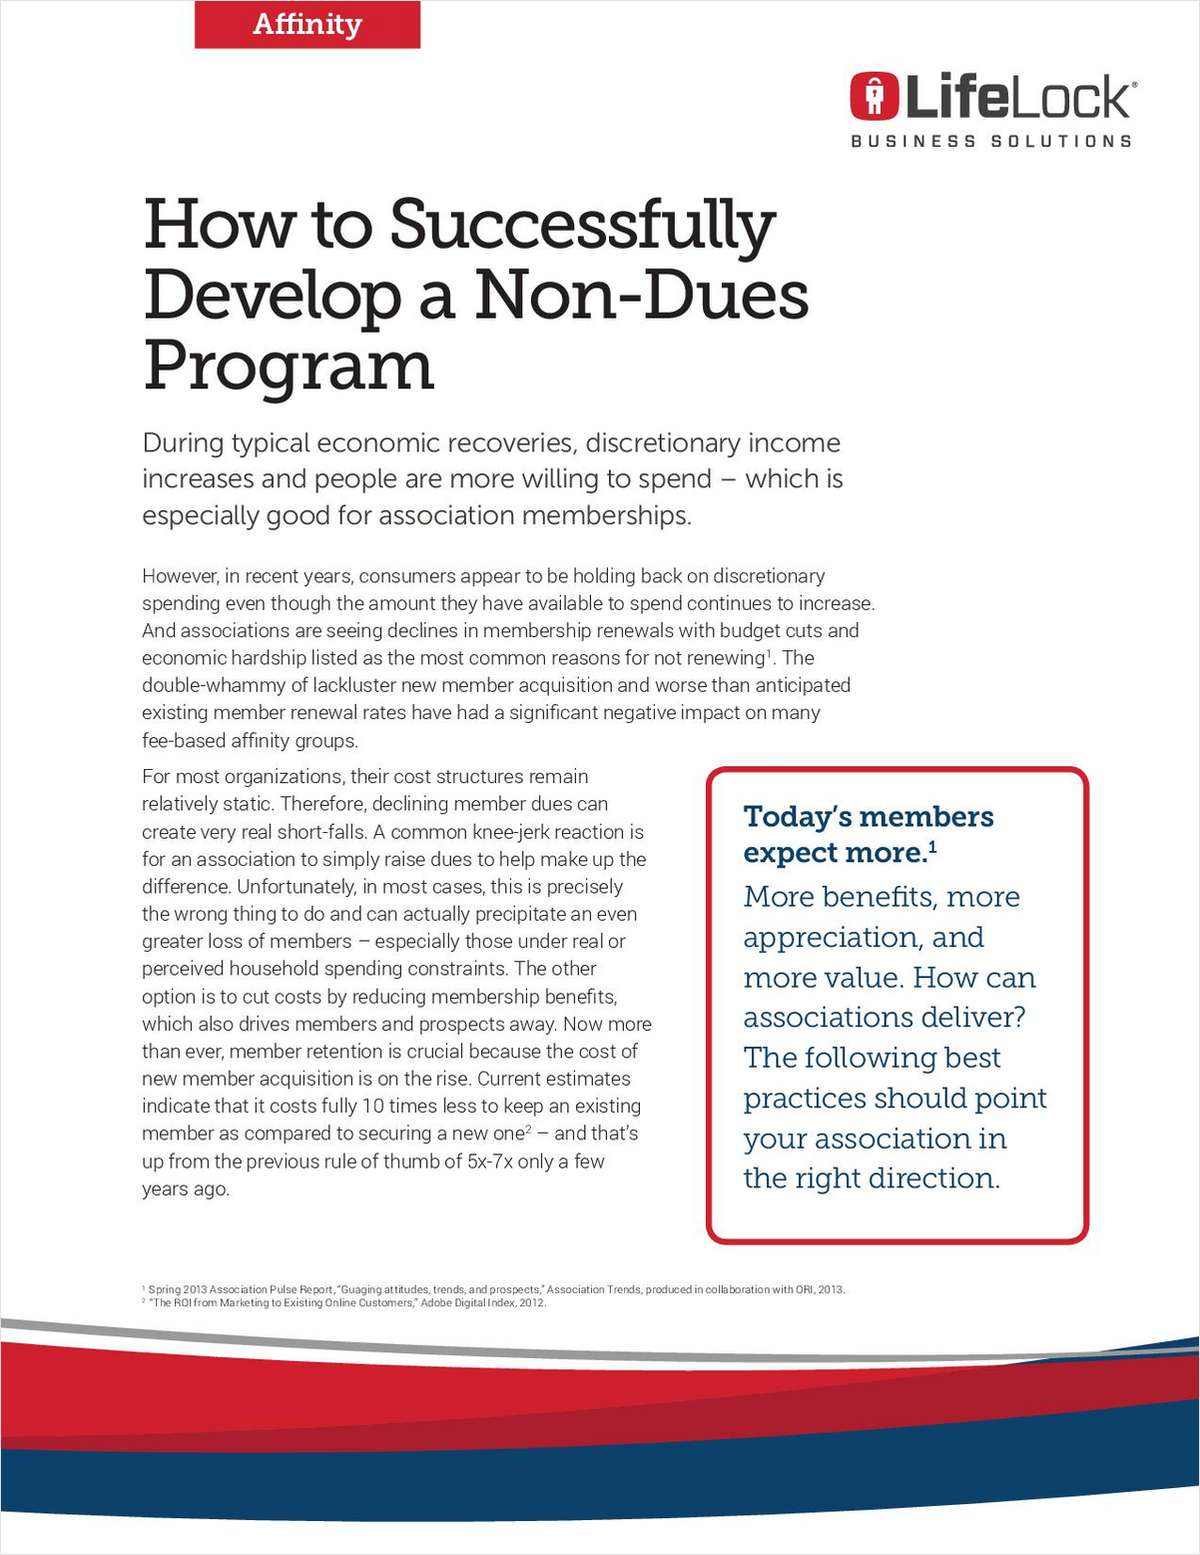 How to Successfully Develop a Non-Dues Program